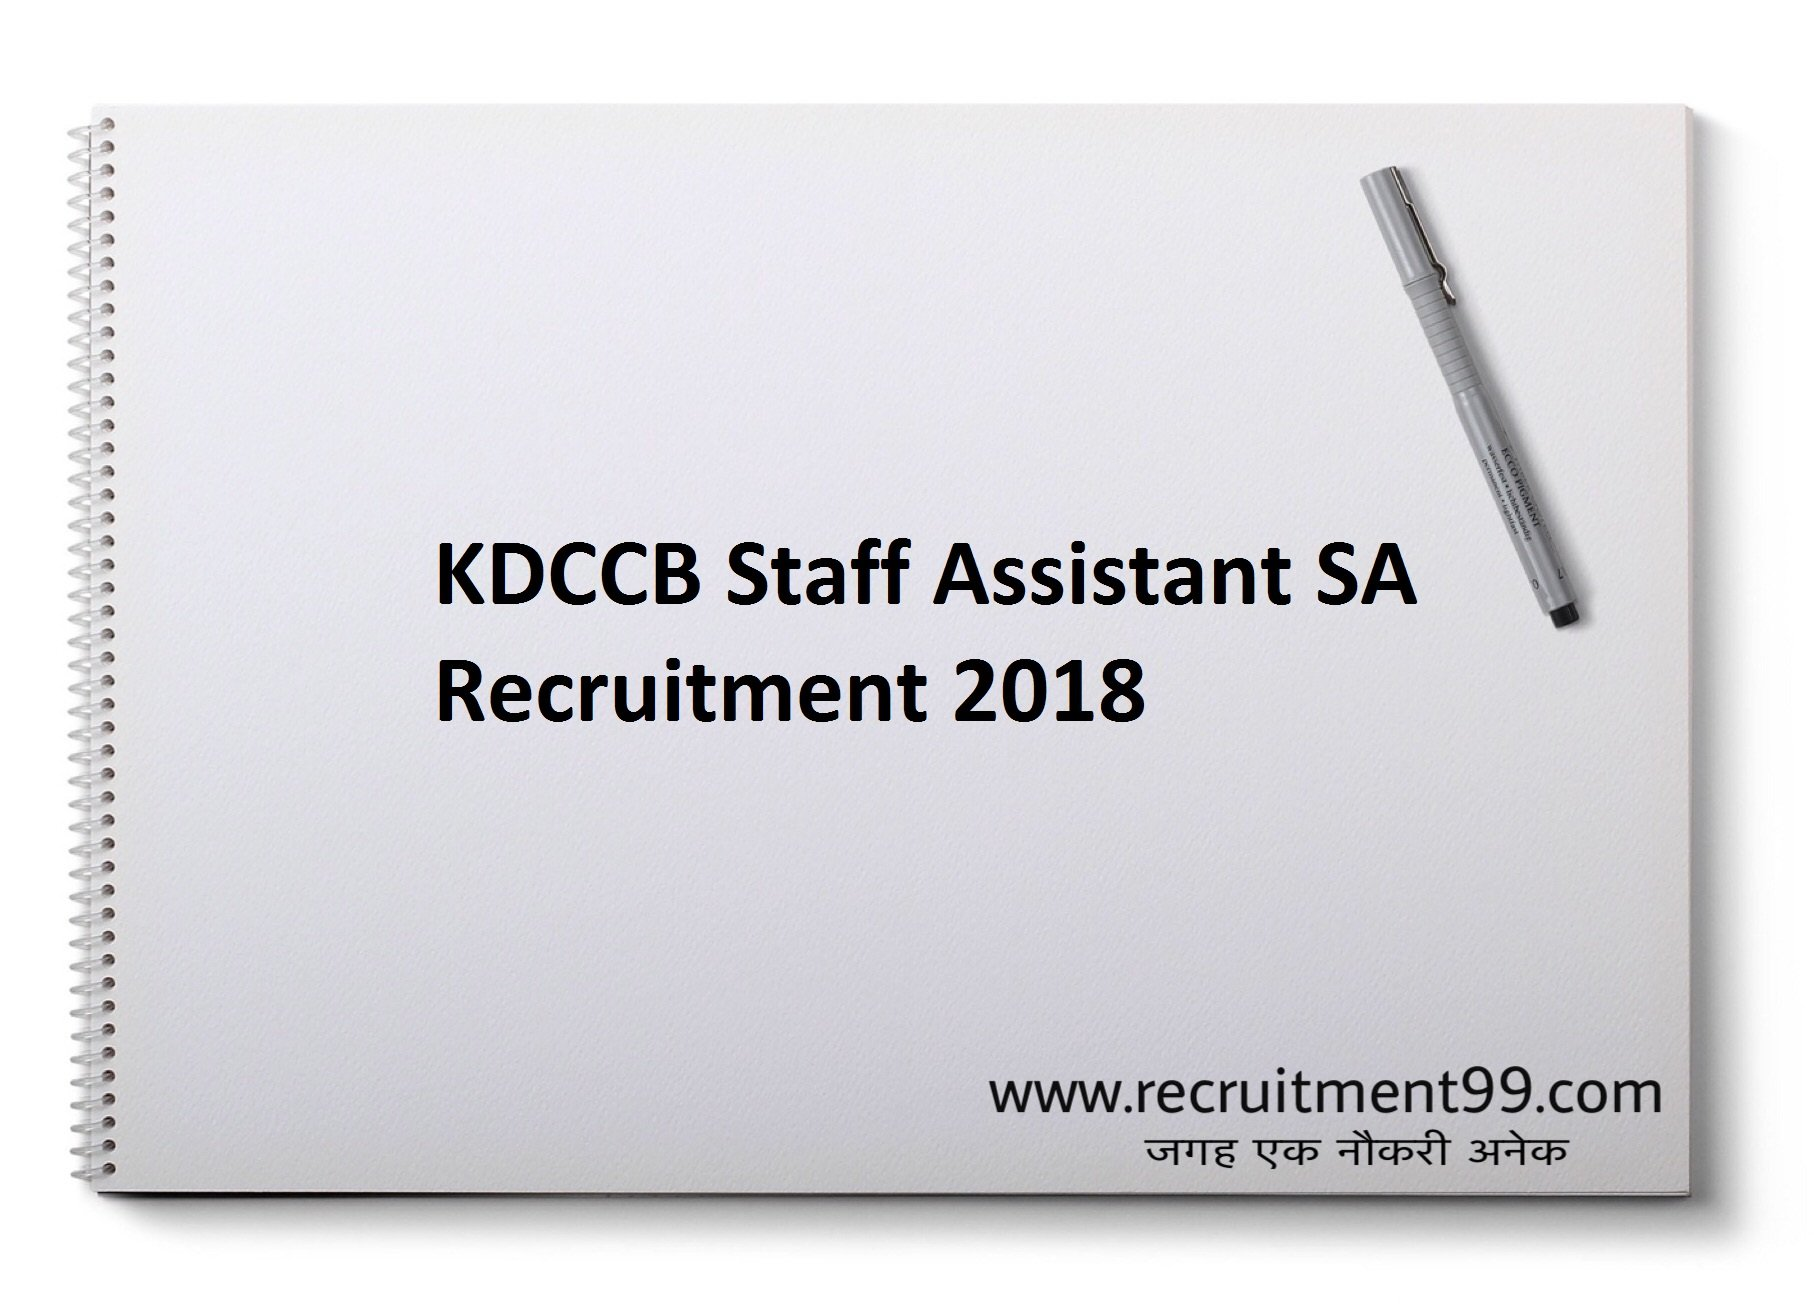 KDCCB Staff Assistant SA Recruitment Admit Card Result 2018